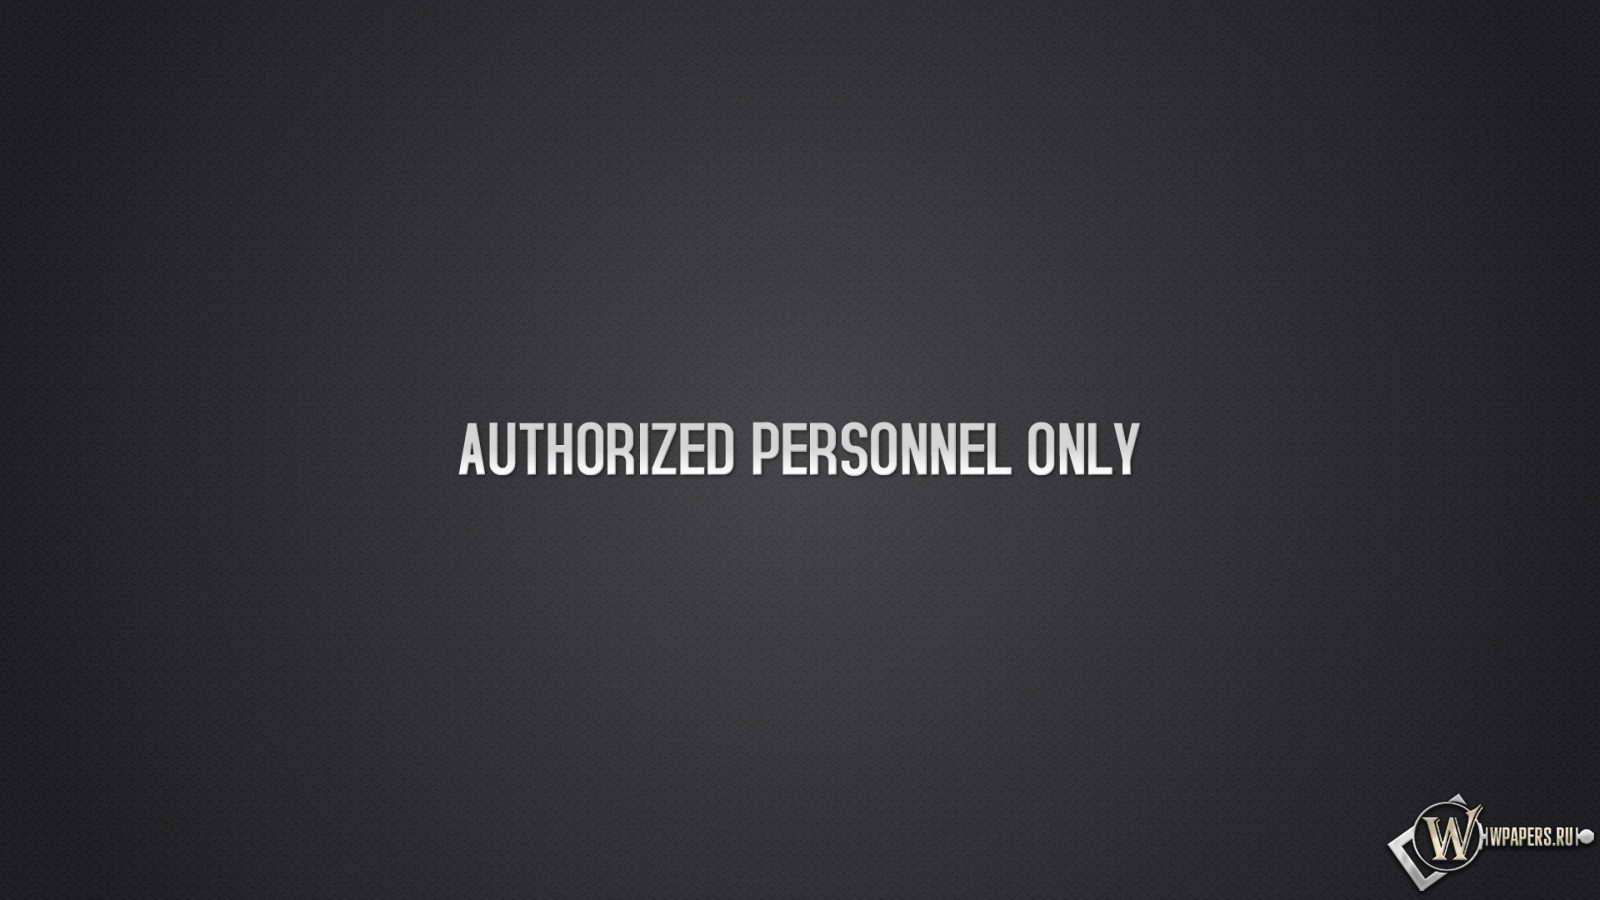 Authorized personnel only 1600x900